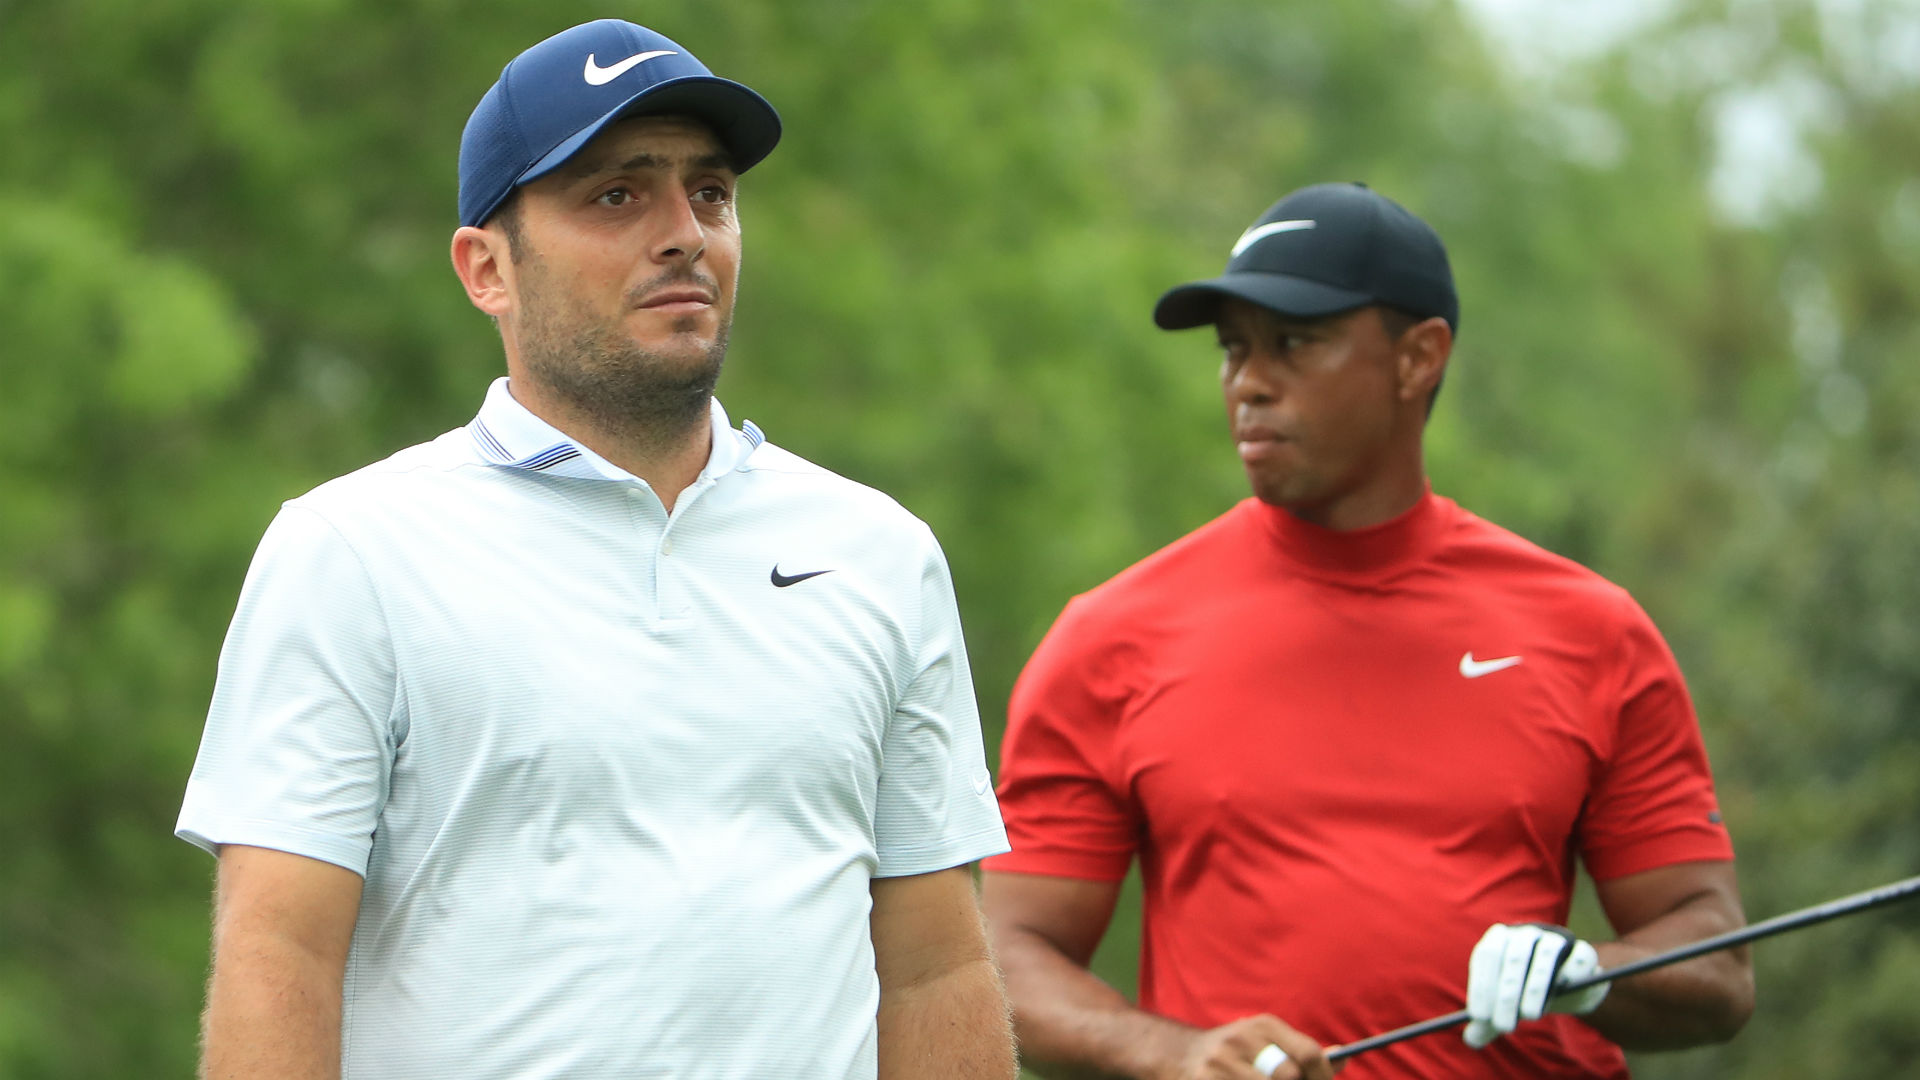 Masters 2019: Francesco Molinari one clear of Tiger Woods with 9 to play